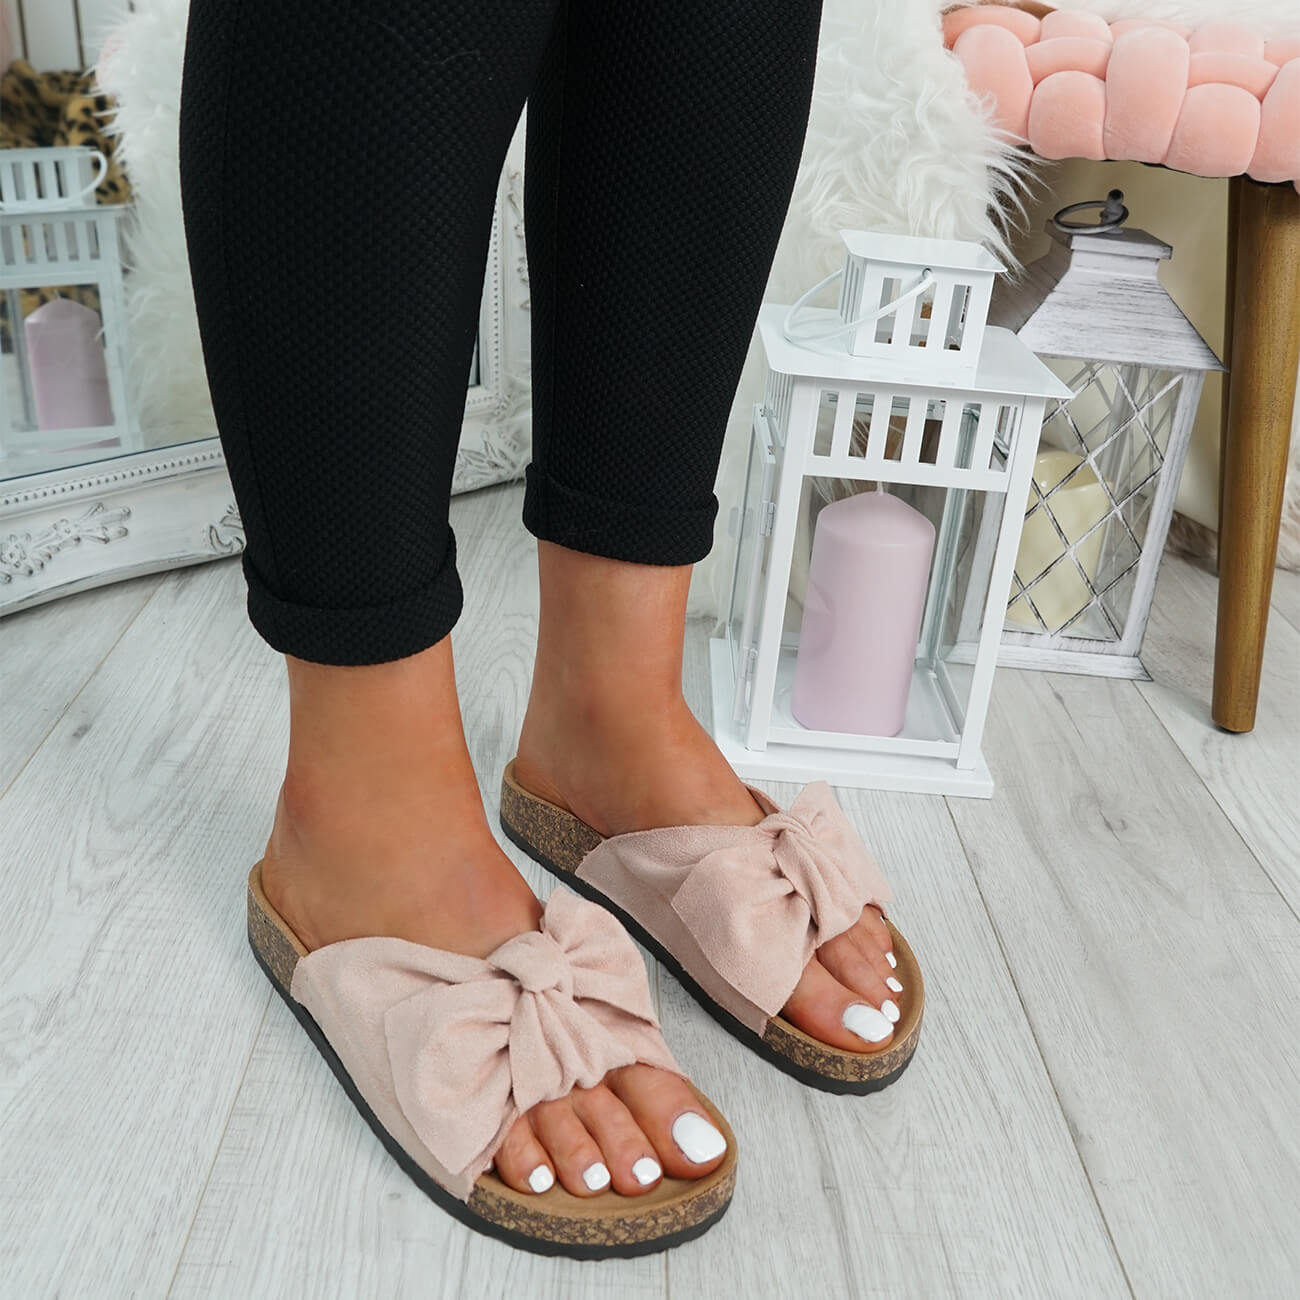 WOMENS-LADIES-SLIP-ON-FLAT-SANDALS-BOW-SLIDERS-SUMMER-CASUAL-SHOES-SIZE thumbnail 35